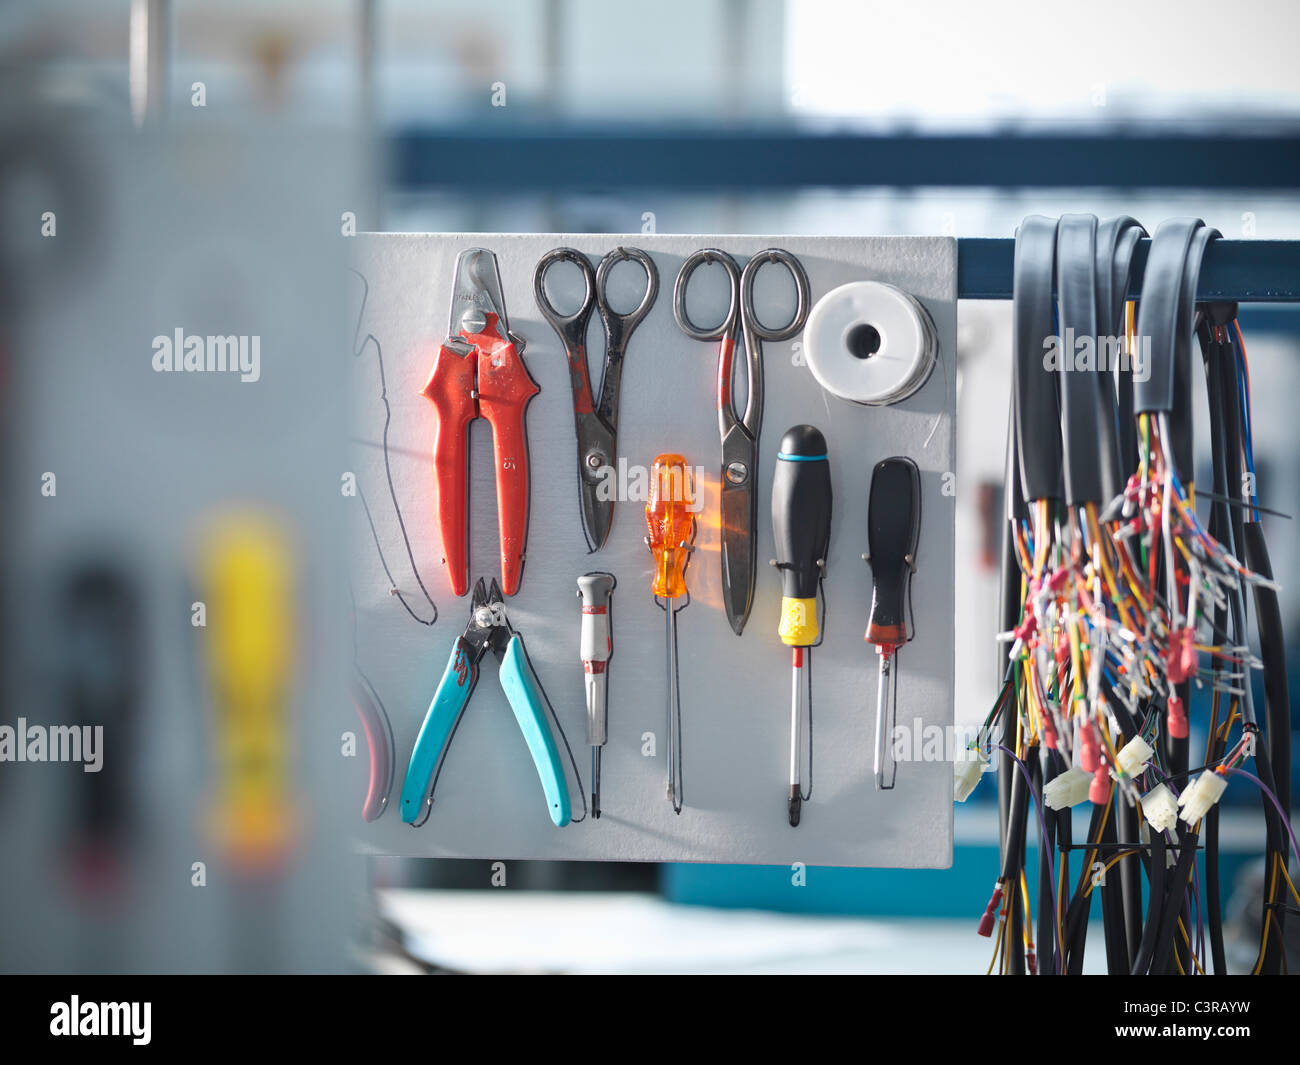 Organised tools and cables - Stock Image